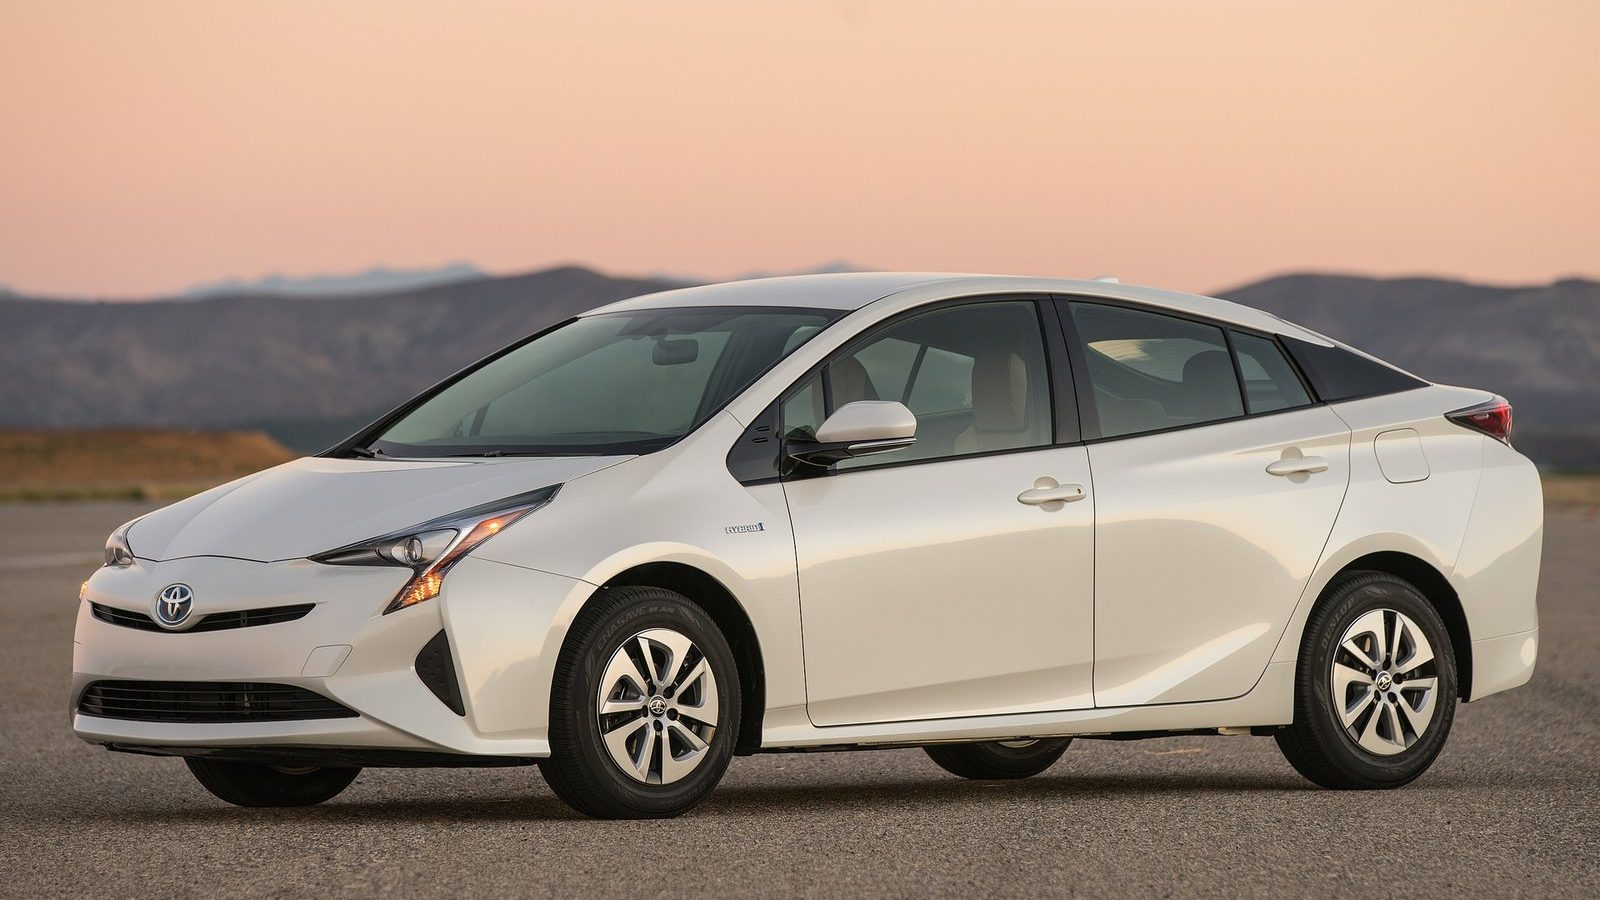 An image of a Toyota Prius outdoors, one of Consumer Reports' best used hybrid cars.